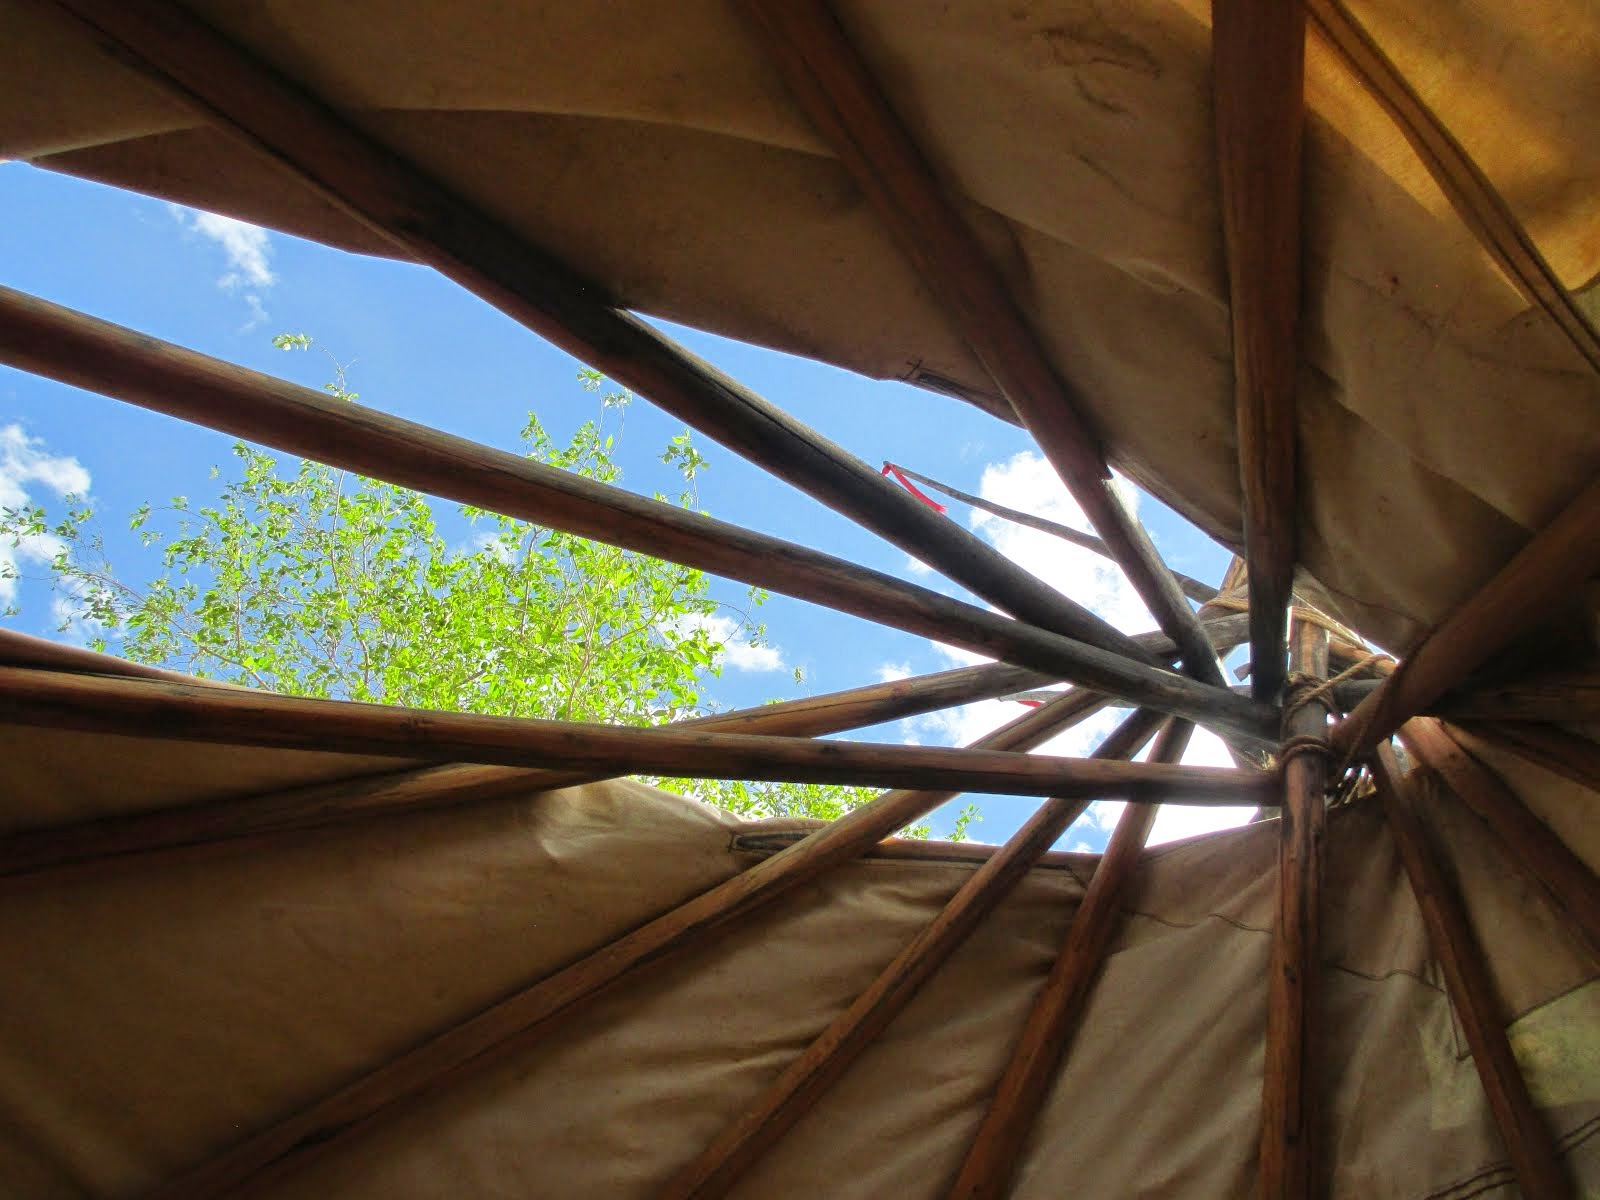 Chronicles of Our experience living in a tipi